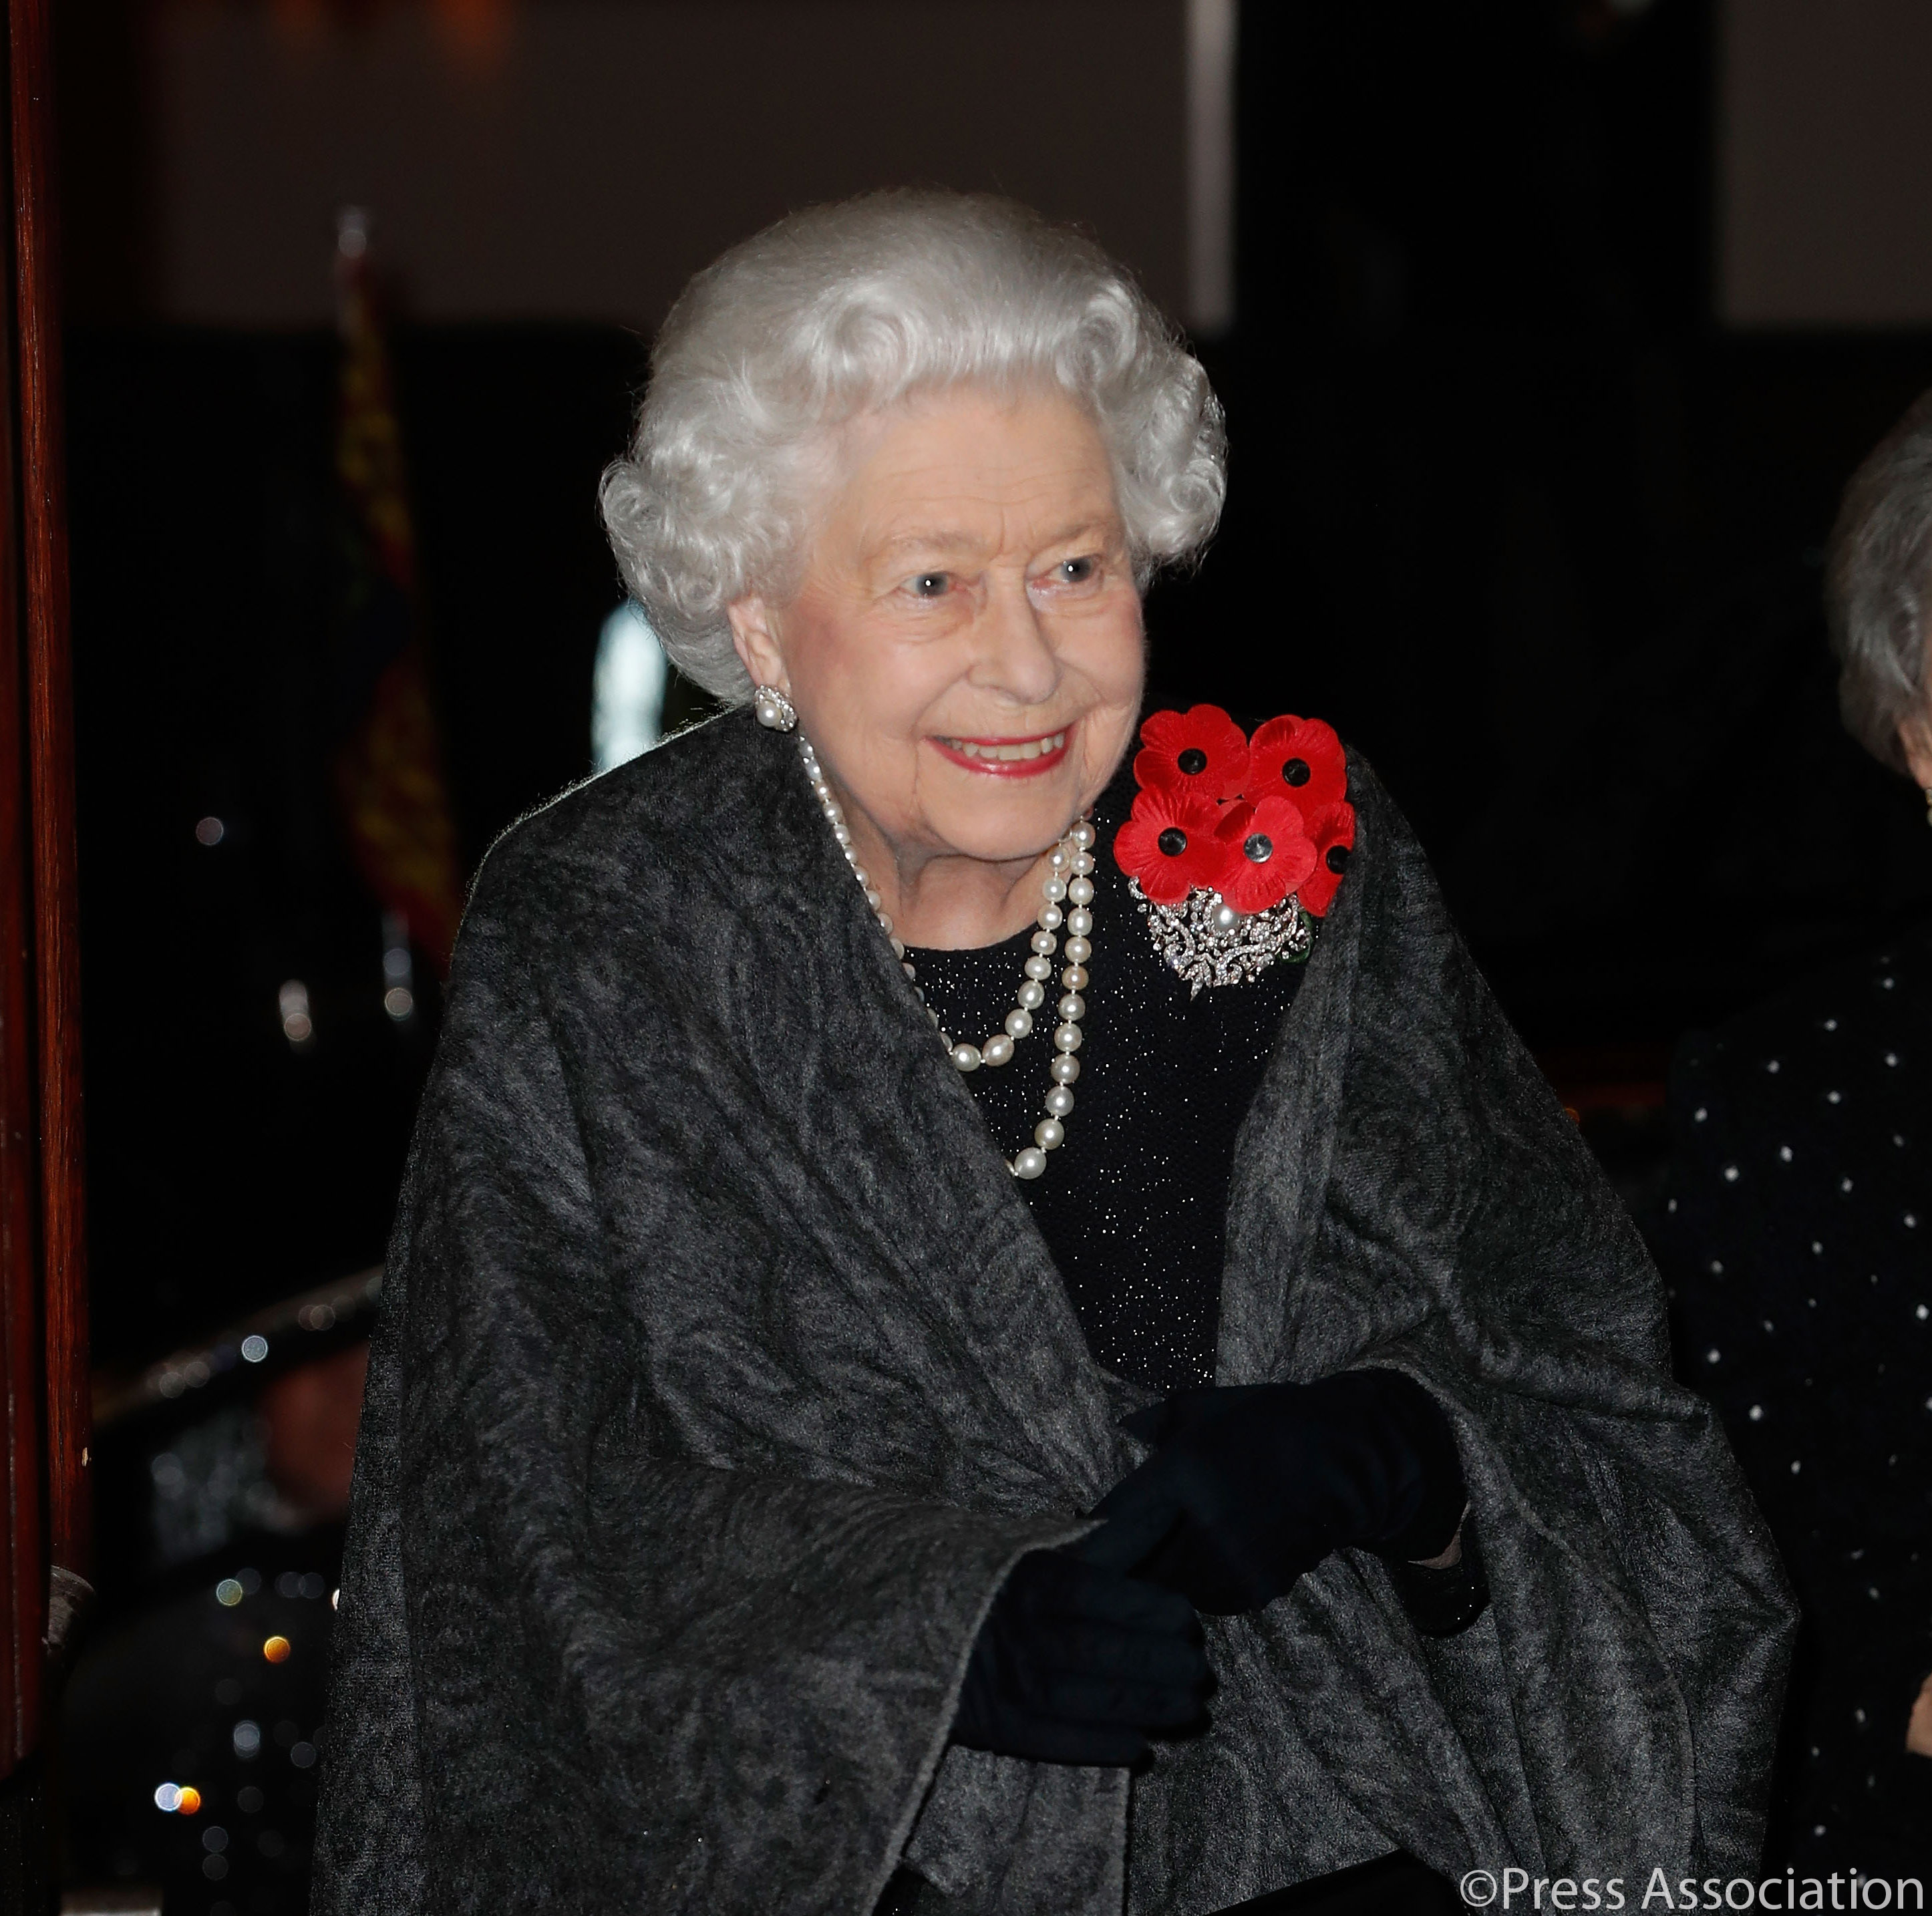 The Queen arrives at the Festival of Remembrance